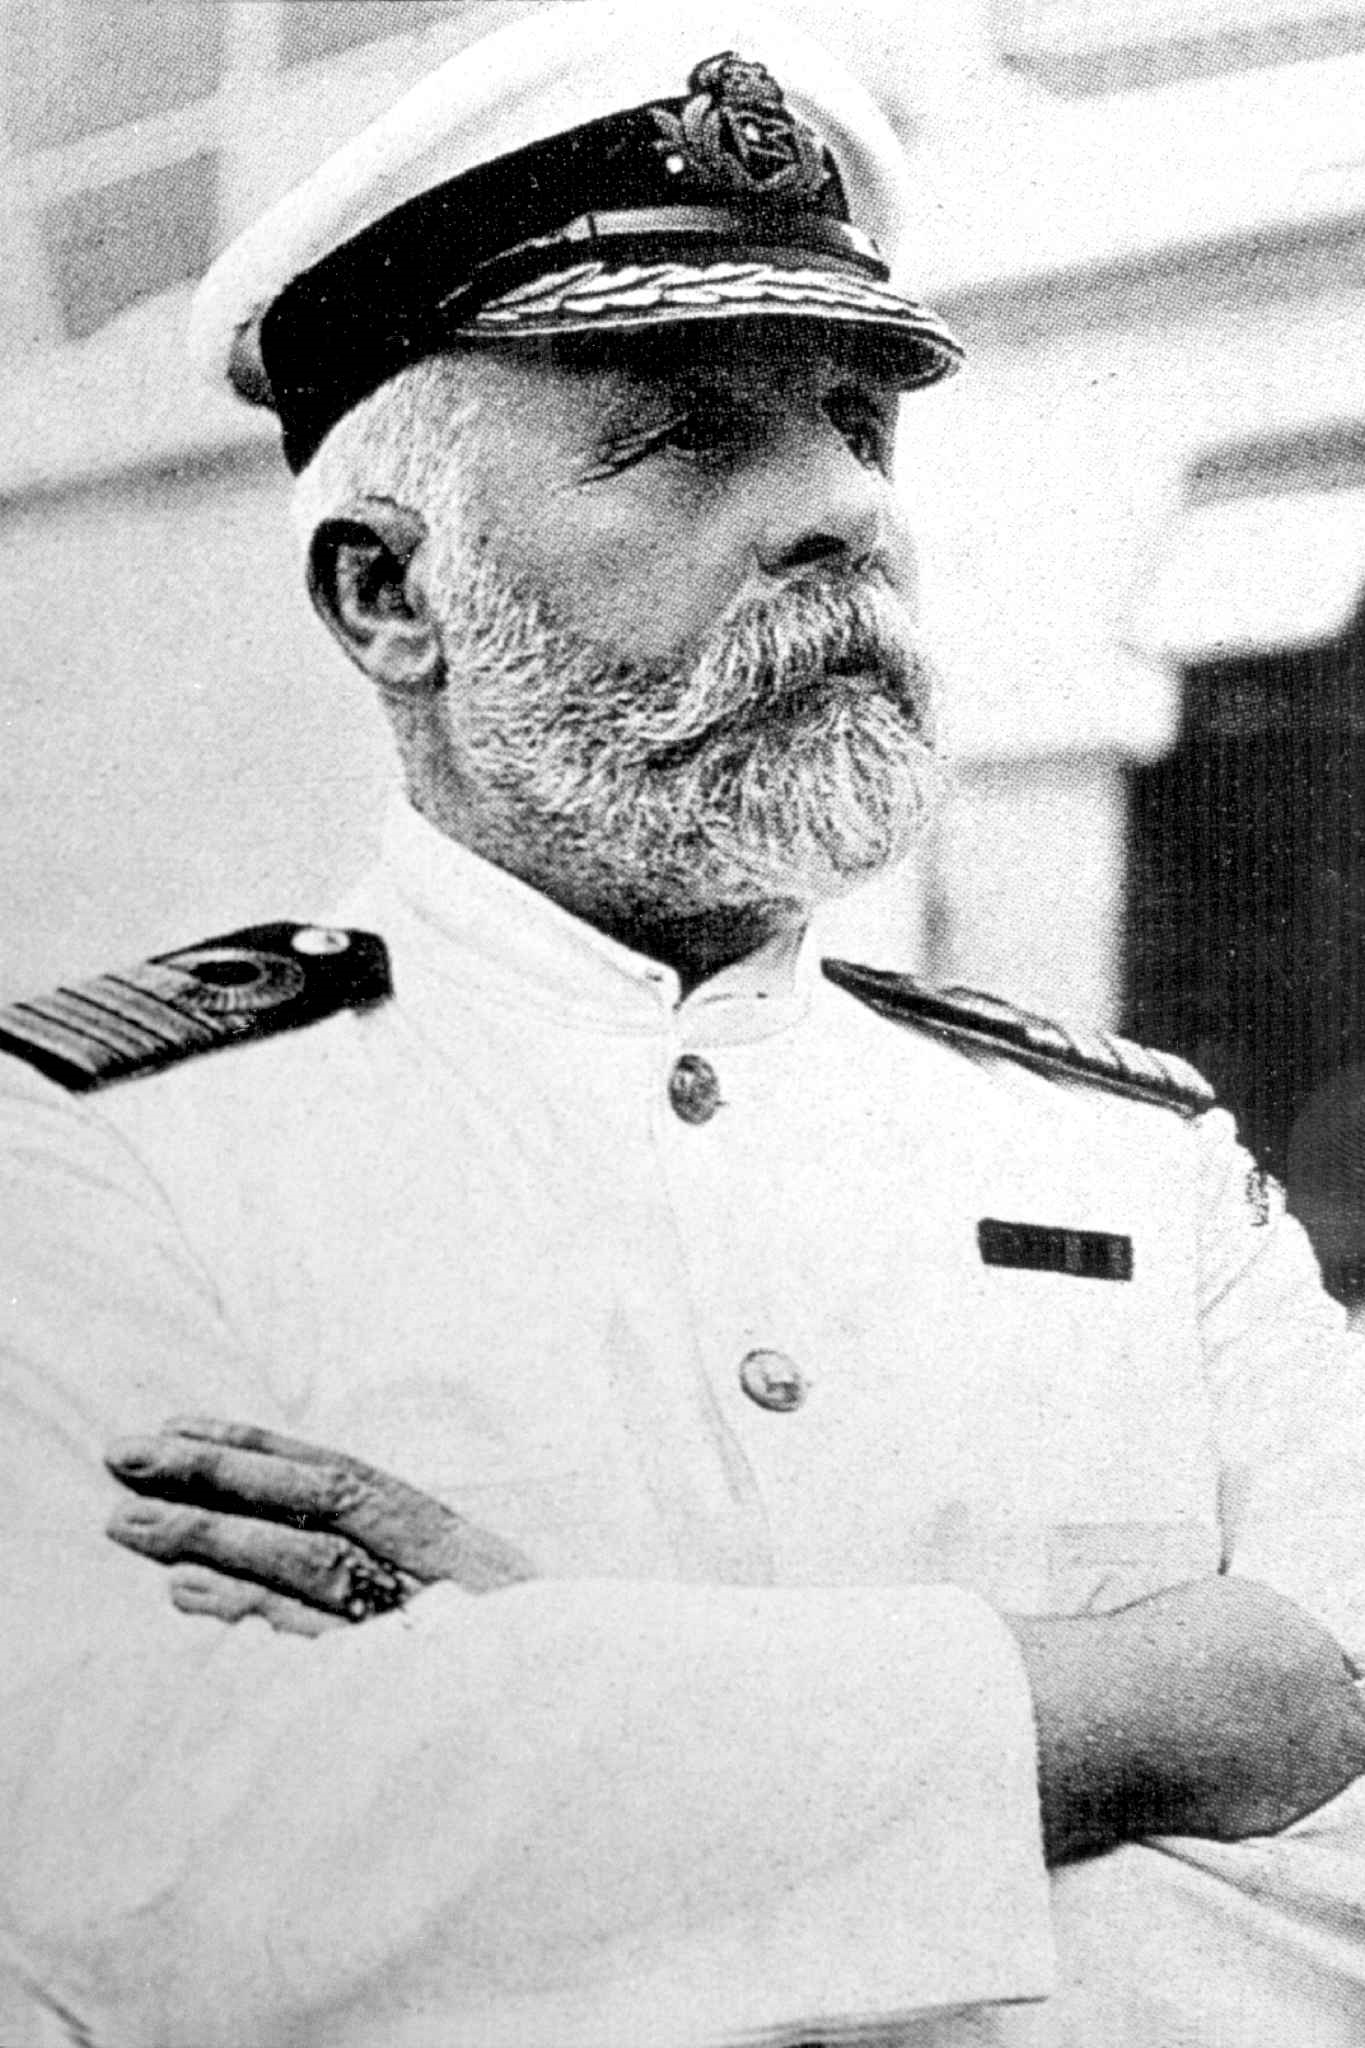 """captain edward j smith and the sinking of the titanic This was captain e j smith's retirement trip all he had to do was get to new york in record time captain e j smith said years before the titanic's voyage, """"i cannot imagine any condition which would cause a ship to founder modern shipbuilding has gone beyond that"""" captain smith ignored seven iceberg warnings from."""